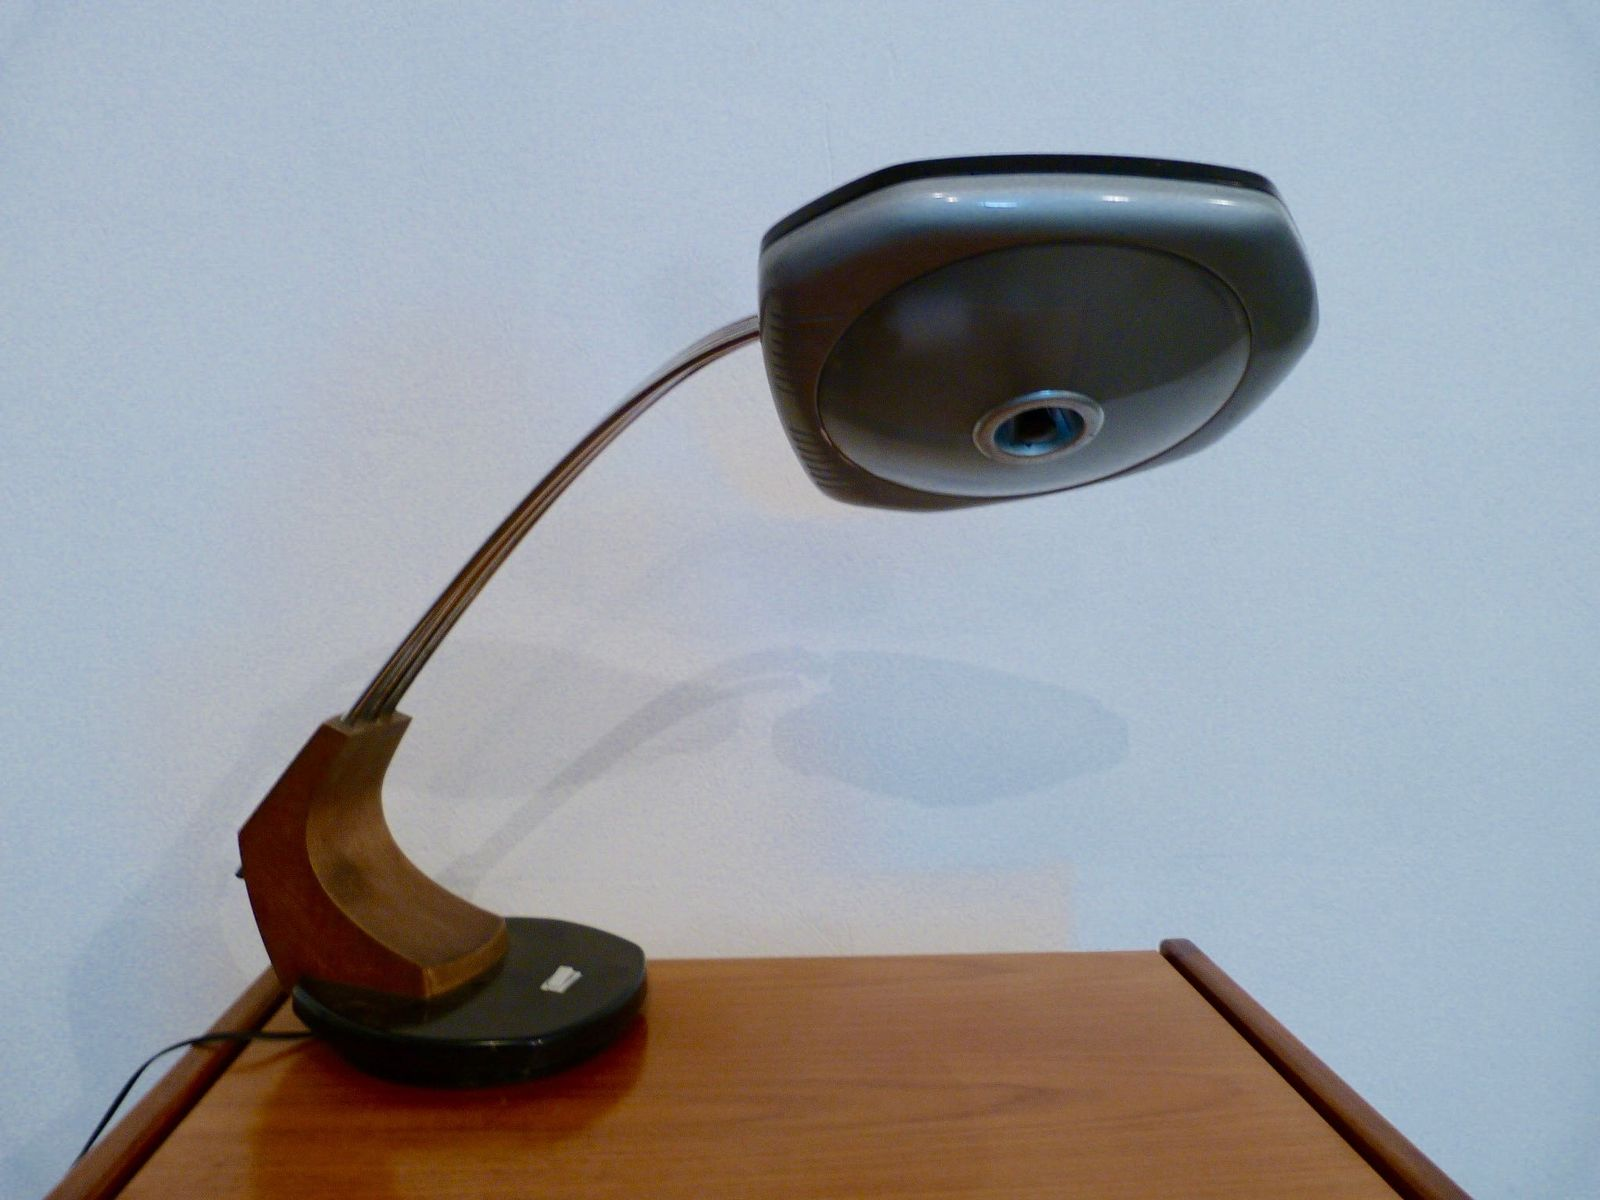 Vintage Model Falux Desk Lamp from Fase, 1970s for sale at Pamono